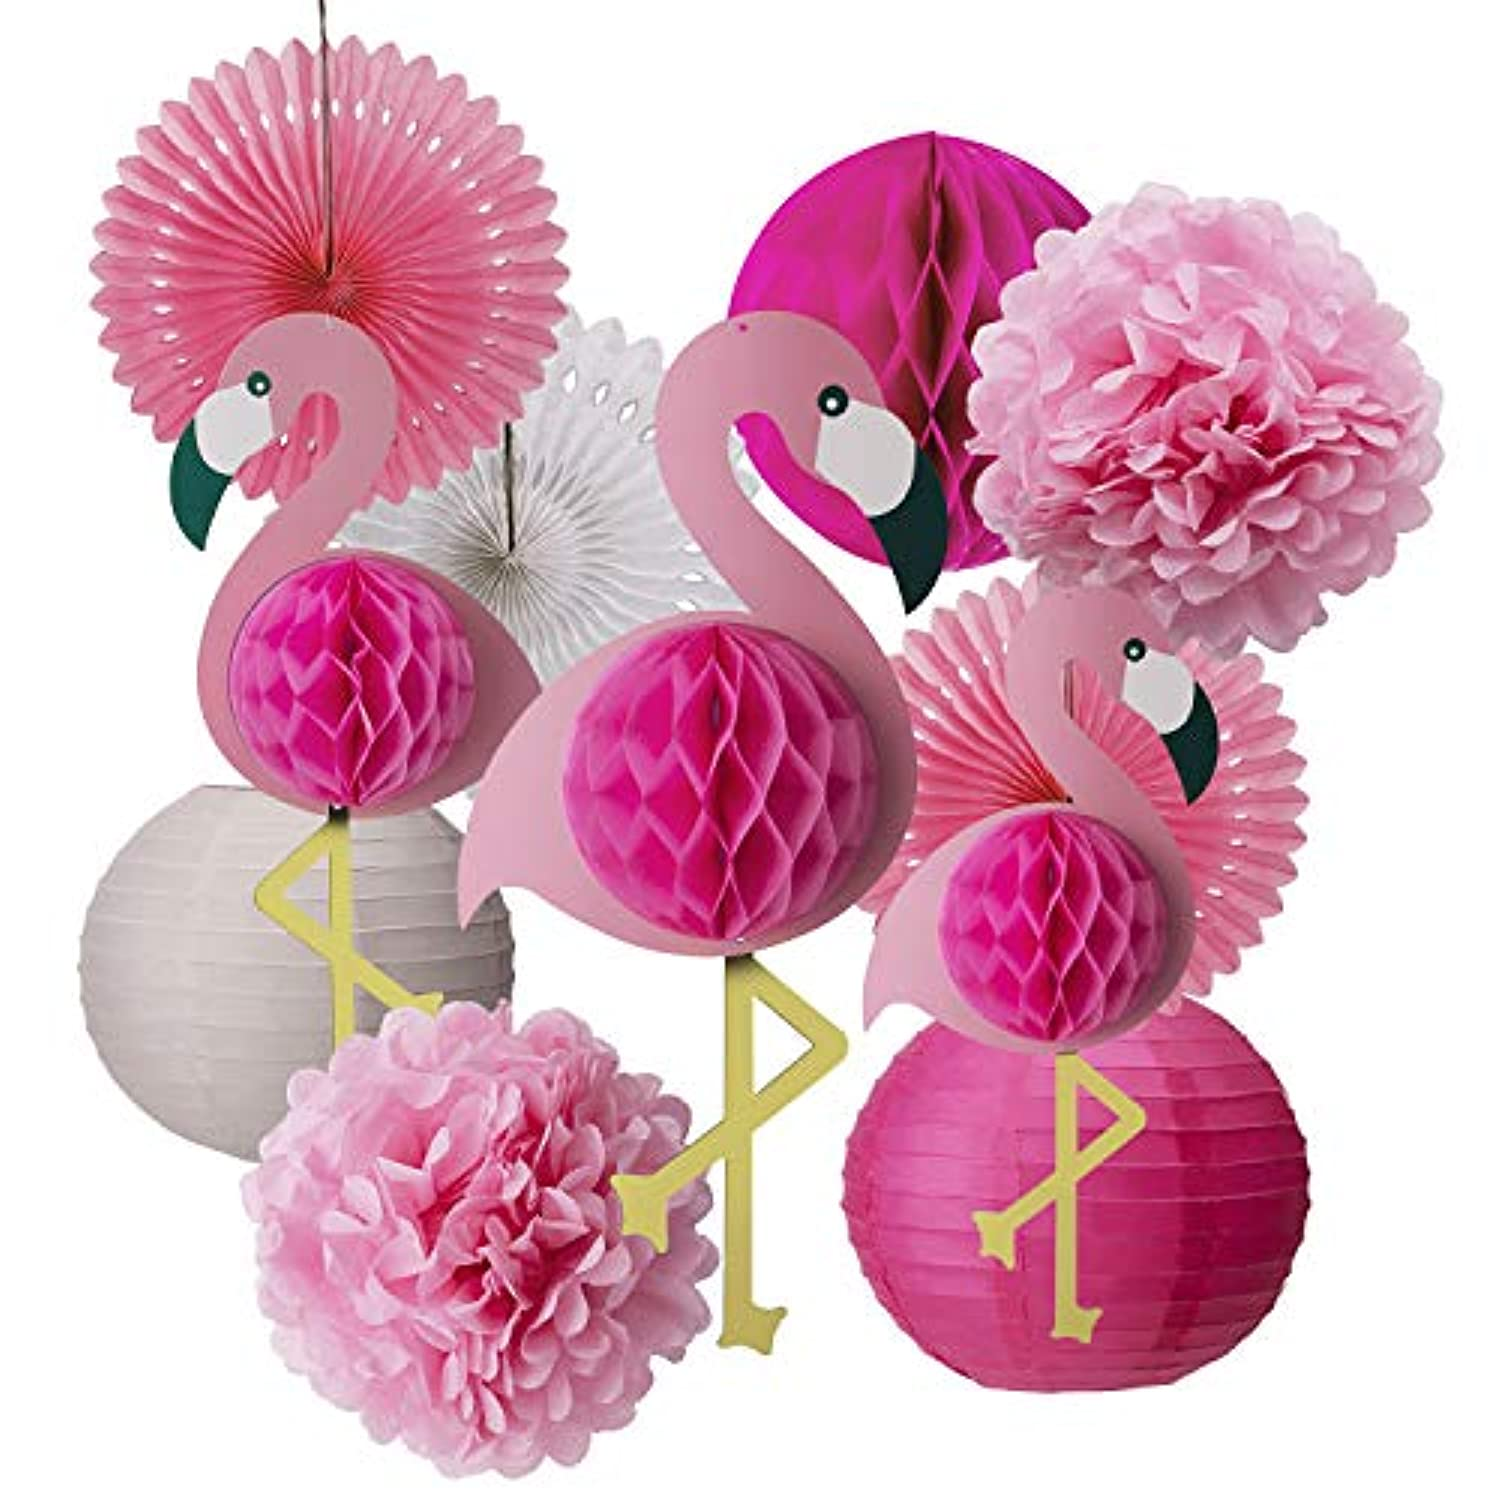 AIEX Tropical Pink Paper Flamingo Party Kit Honeycomb Balls Decorations Tissue Paper Pom Poms Flowers Paper Fans for Hawaiian Summer Beach Luau Party Supplies(11 PCS)